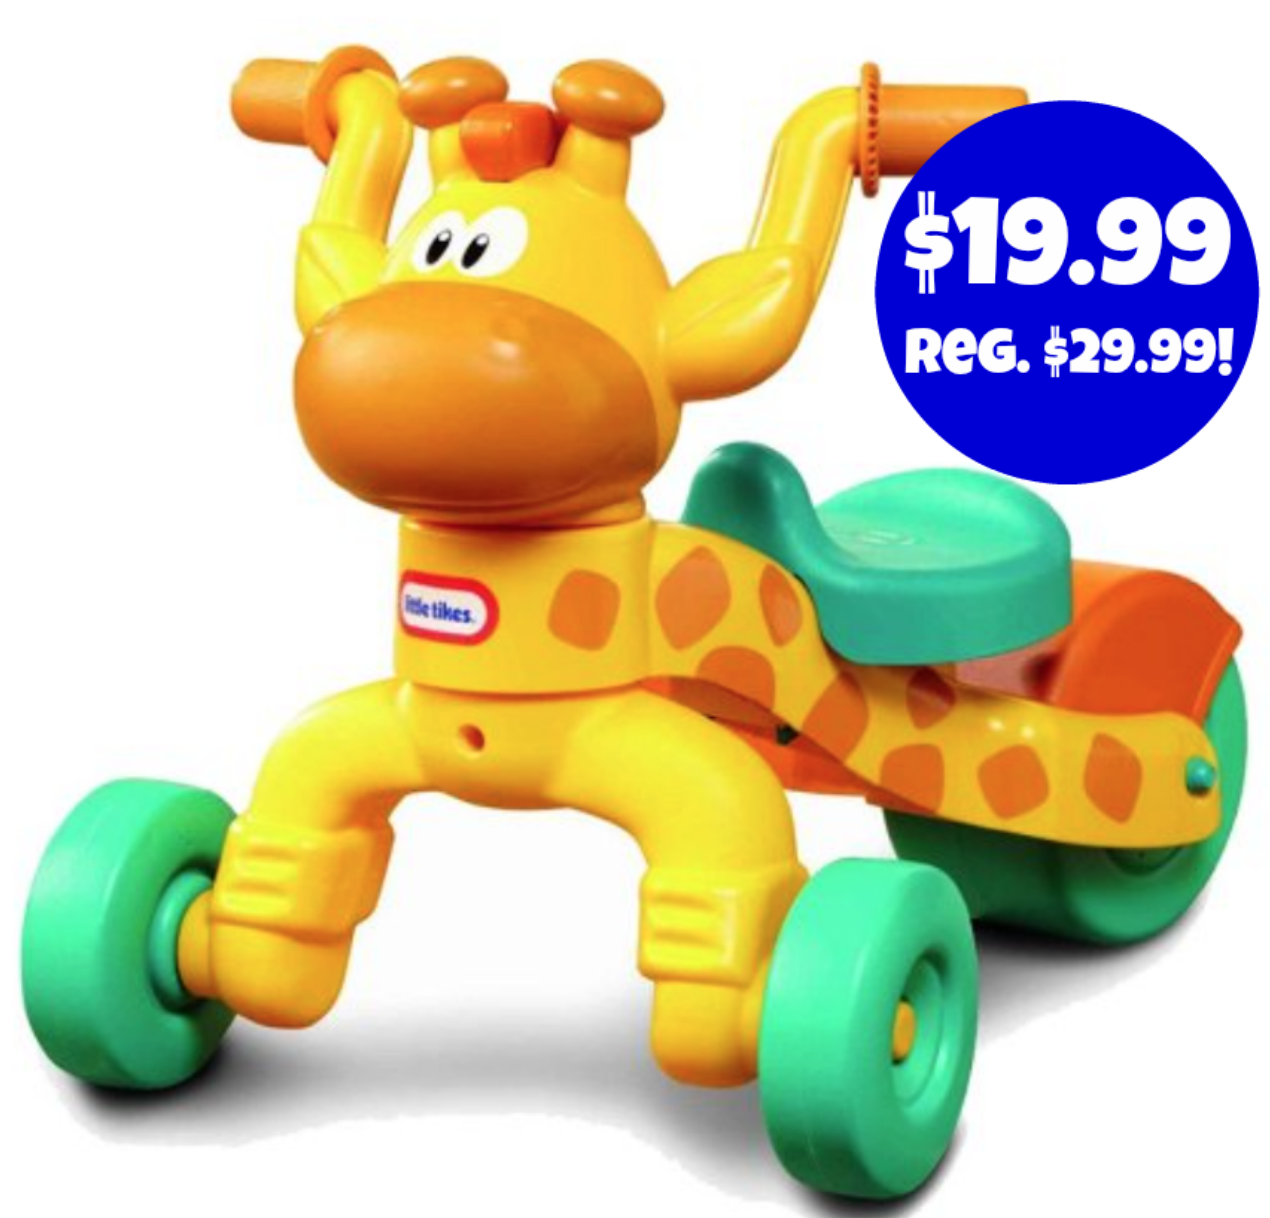 http://www.thebinderladies.com/2014/11/amazon-little-tikes-go-n-grow-lil.html#.VGawSofduyM